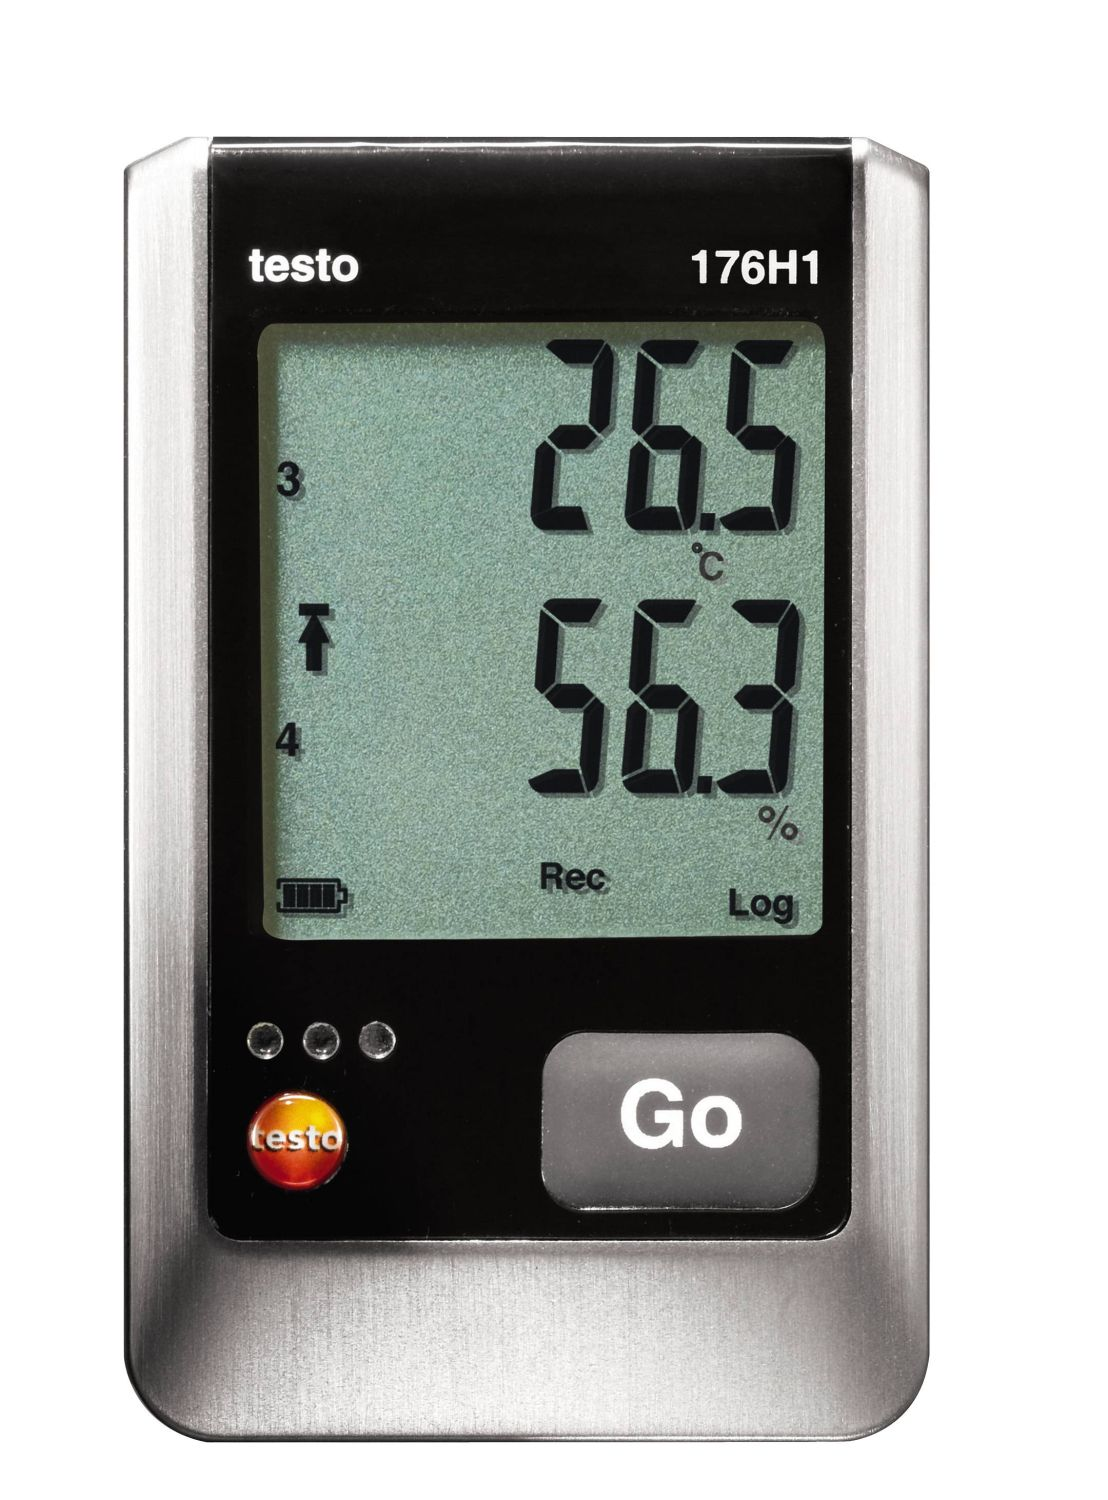 Testo 176 H1 - Temperature and humidity data logger with clear display